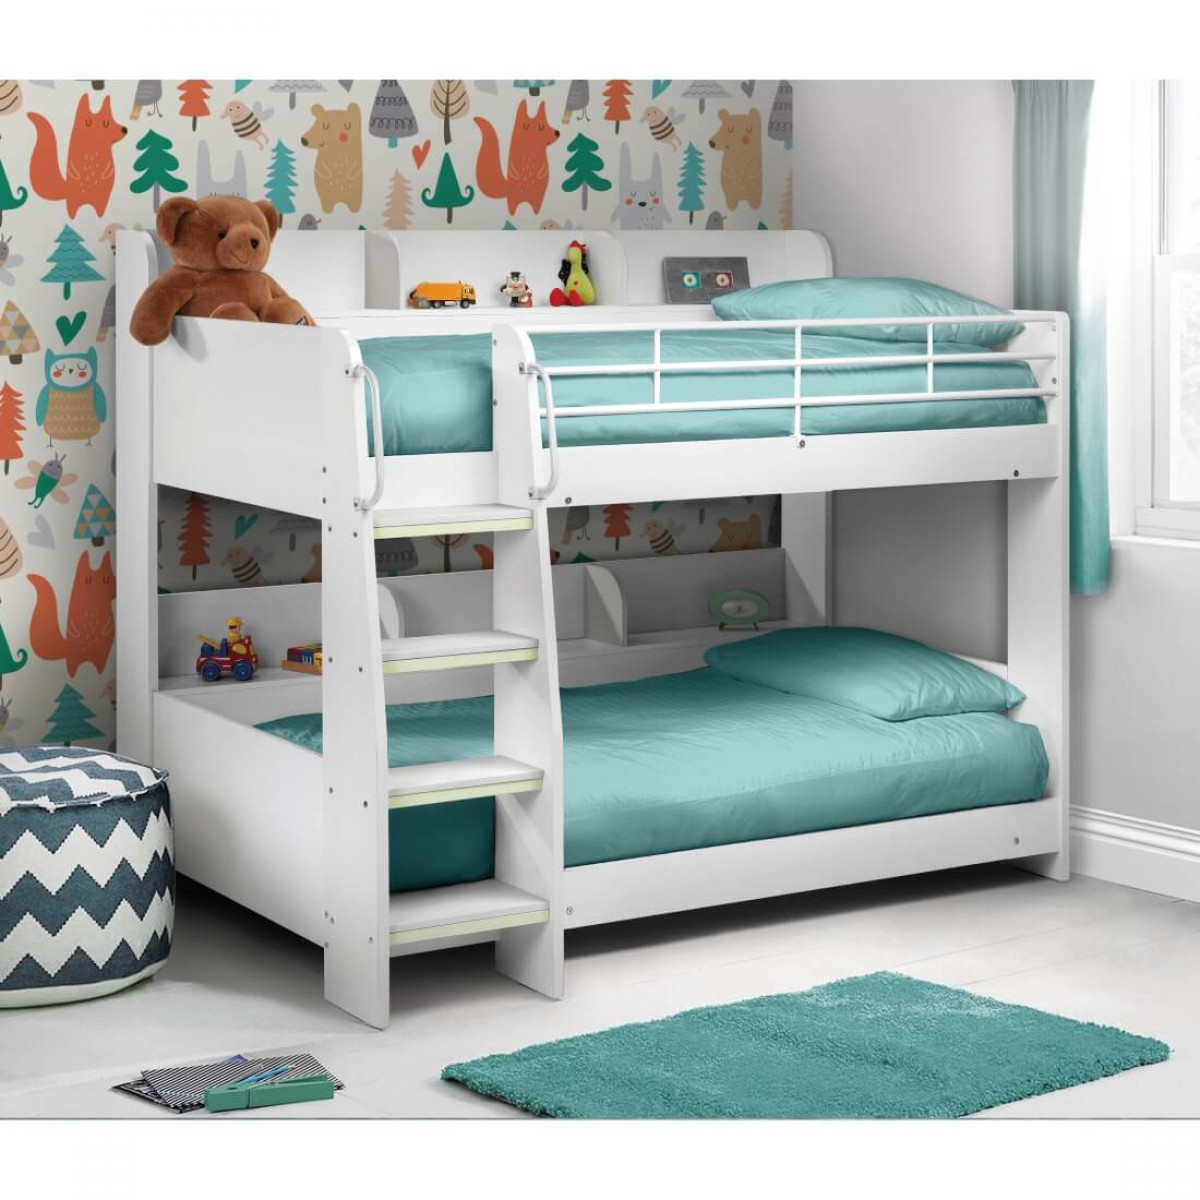 julian bowen domino white bunk bed dom002. Black Bedroom Furniture Sets. Home Design Ideas